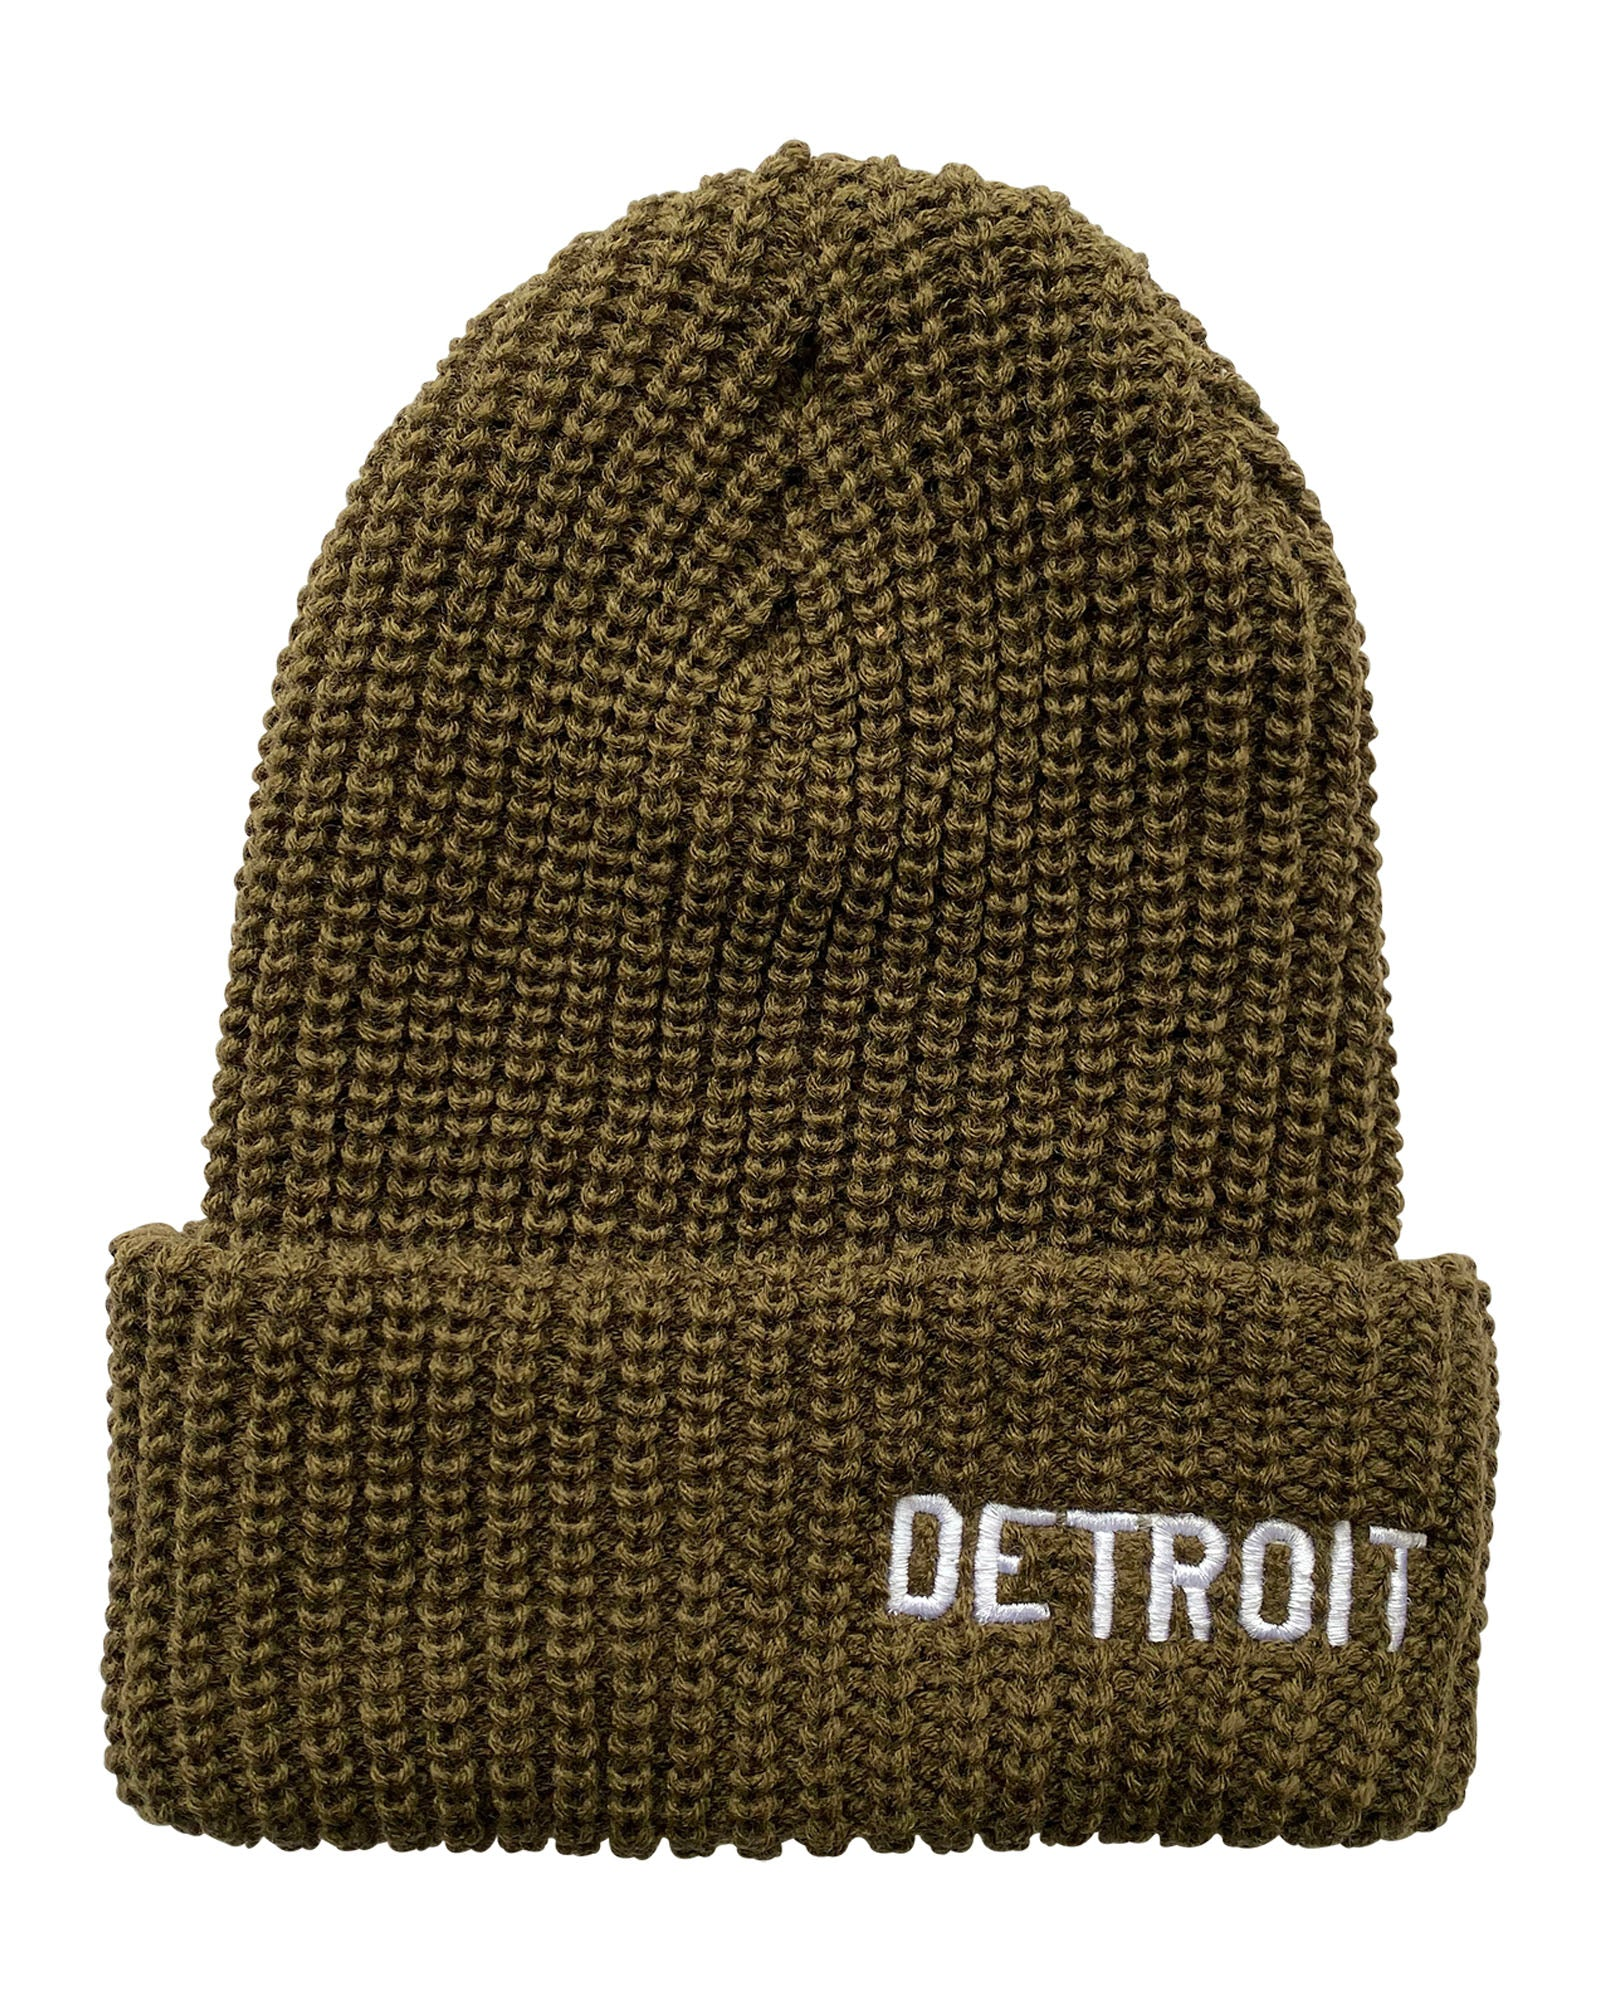 Basic Detroit - Lumberjack Knit Beanie with Cuff